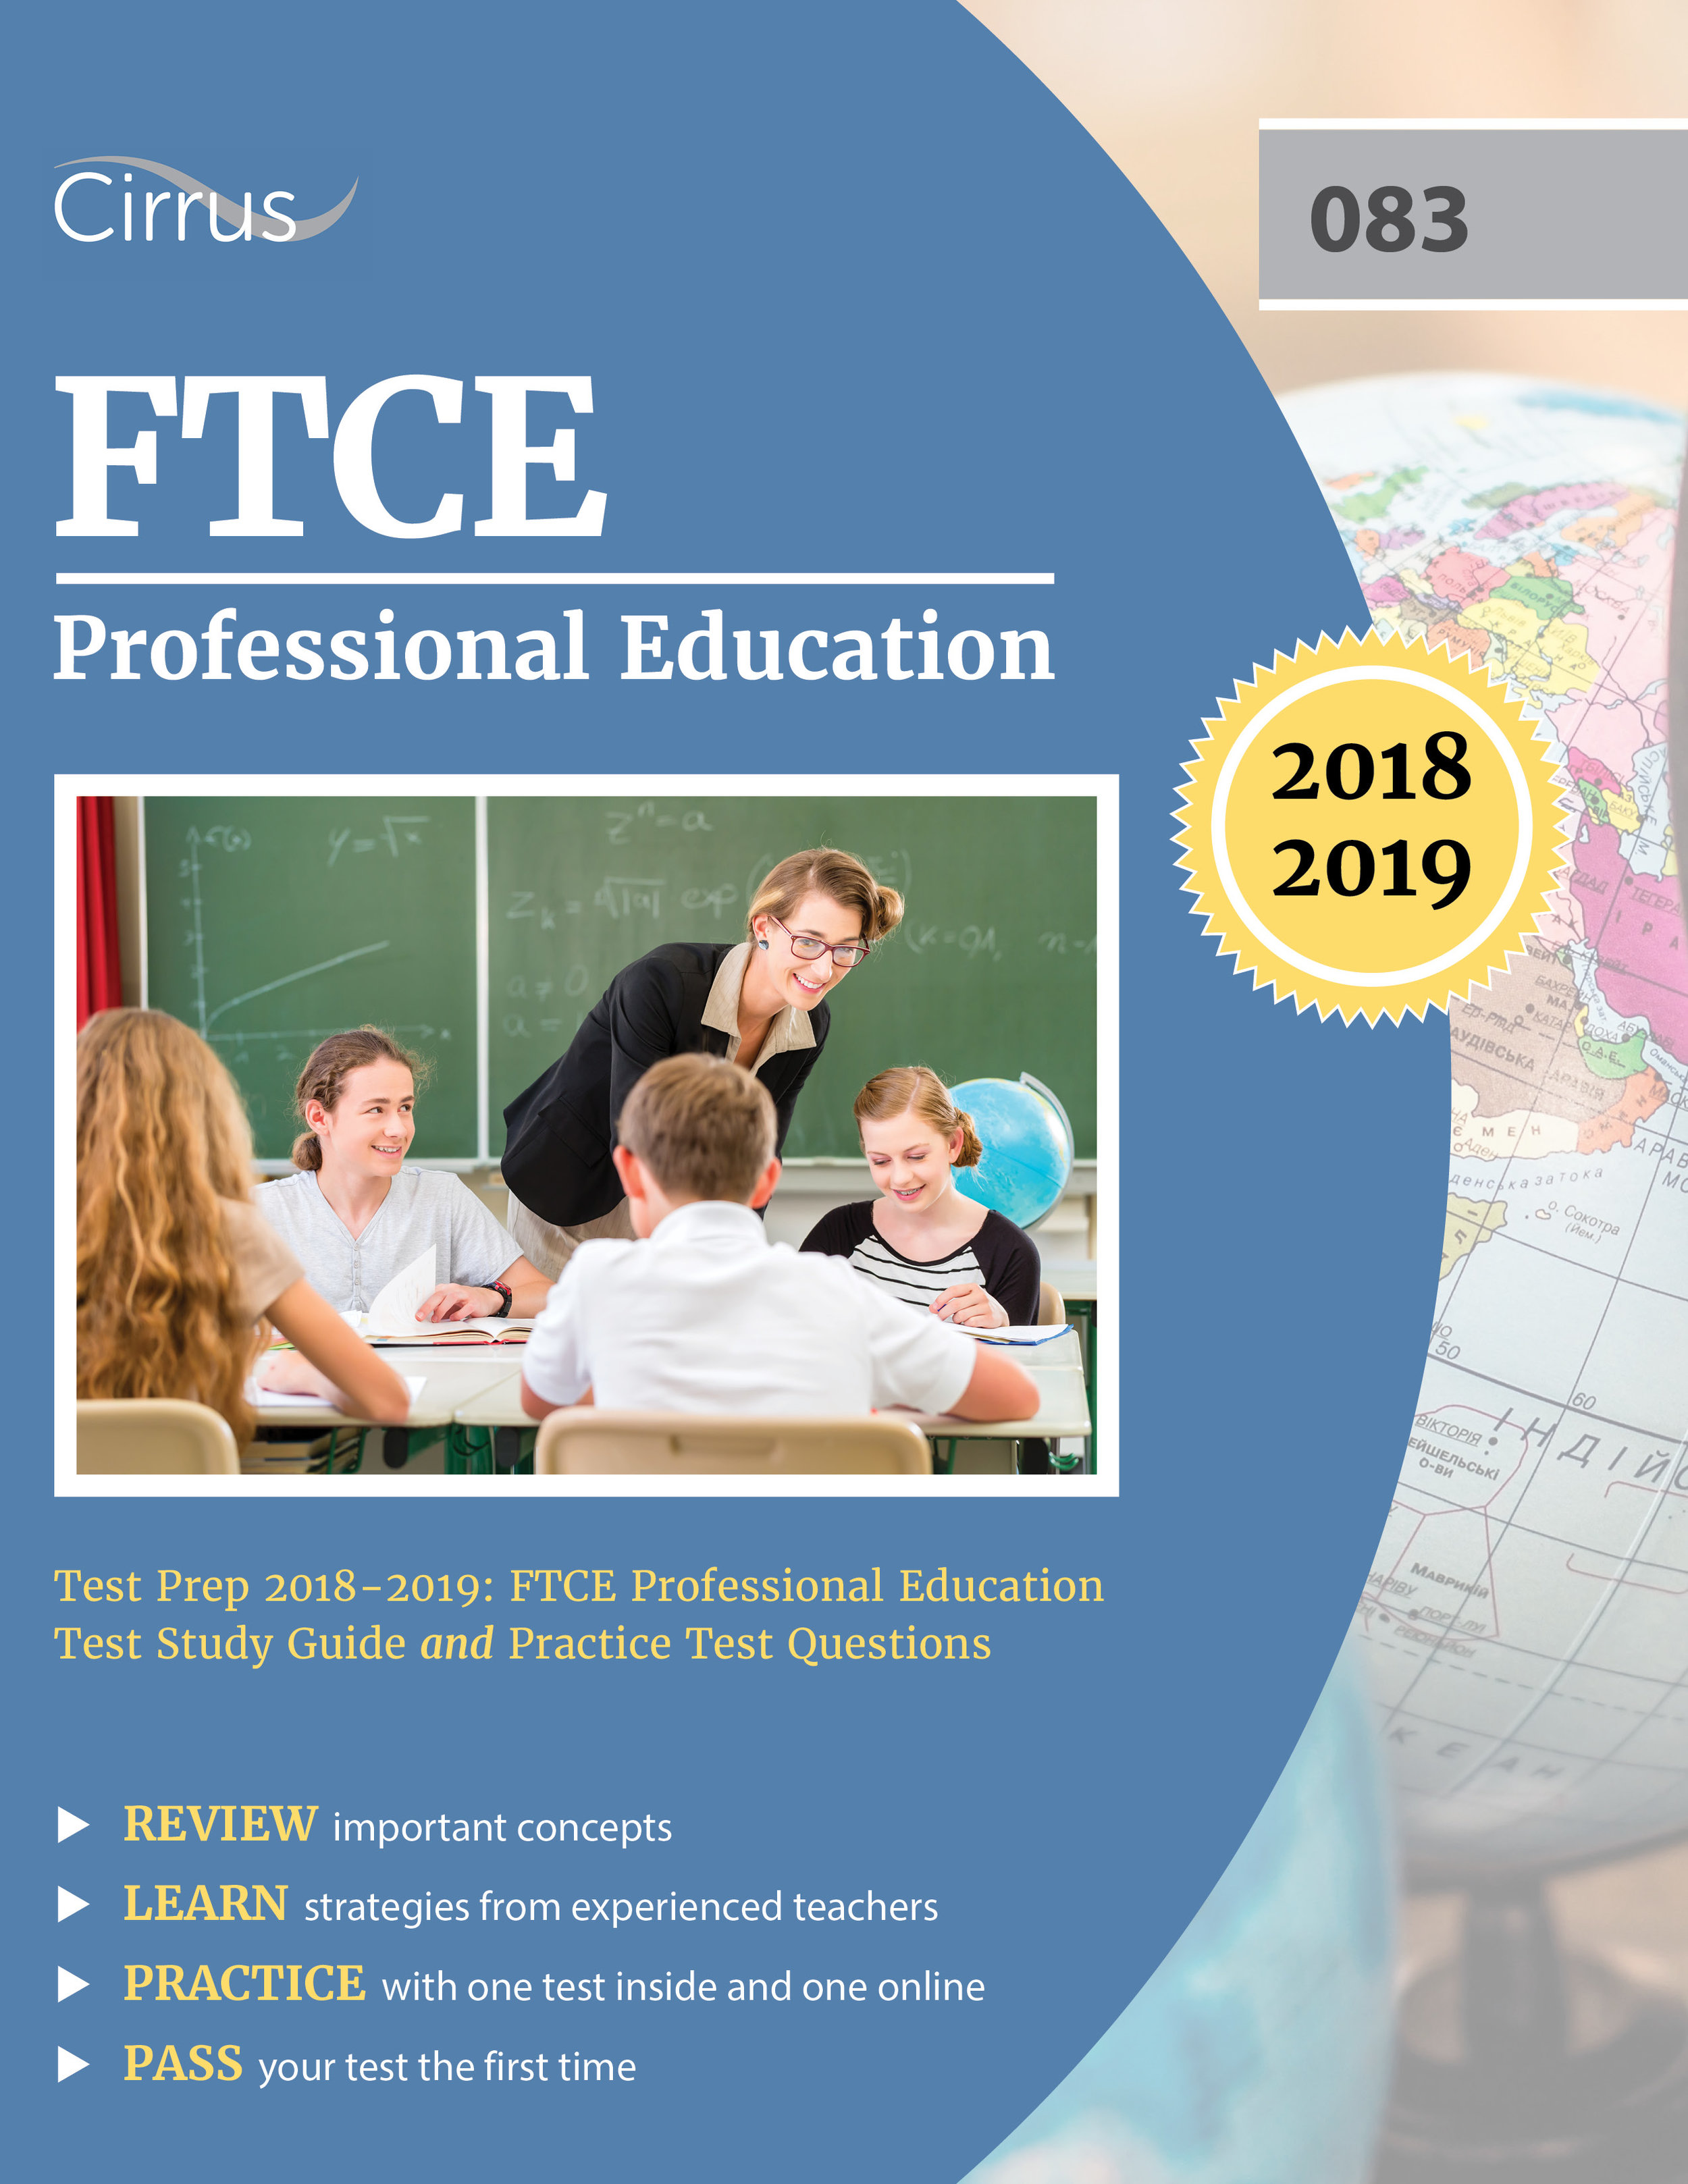 FTCE Professional Education 2018